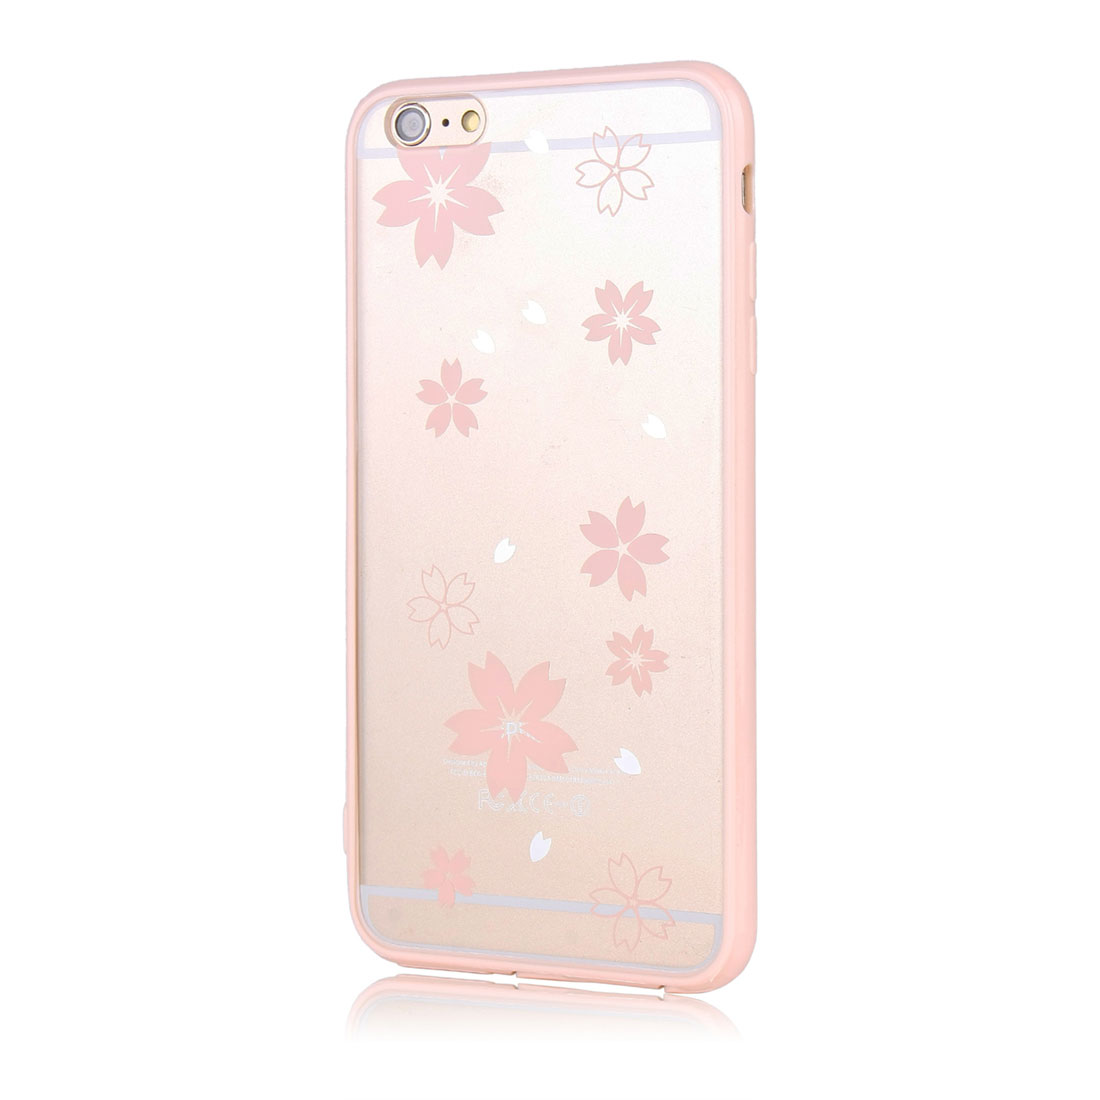 Luxury Transparent Case Cover Pink for Apple iPhone 6 Plus